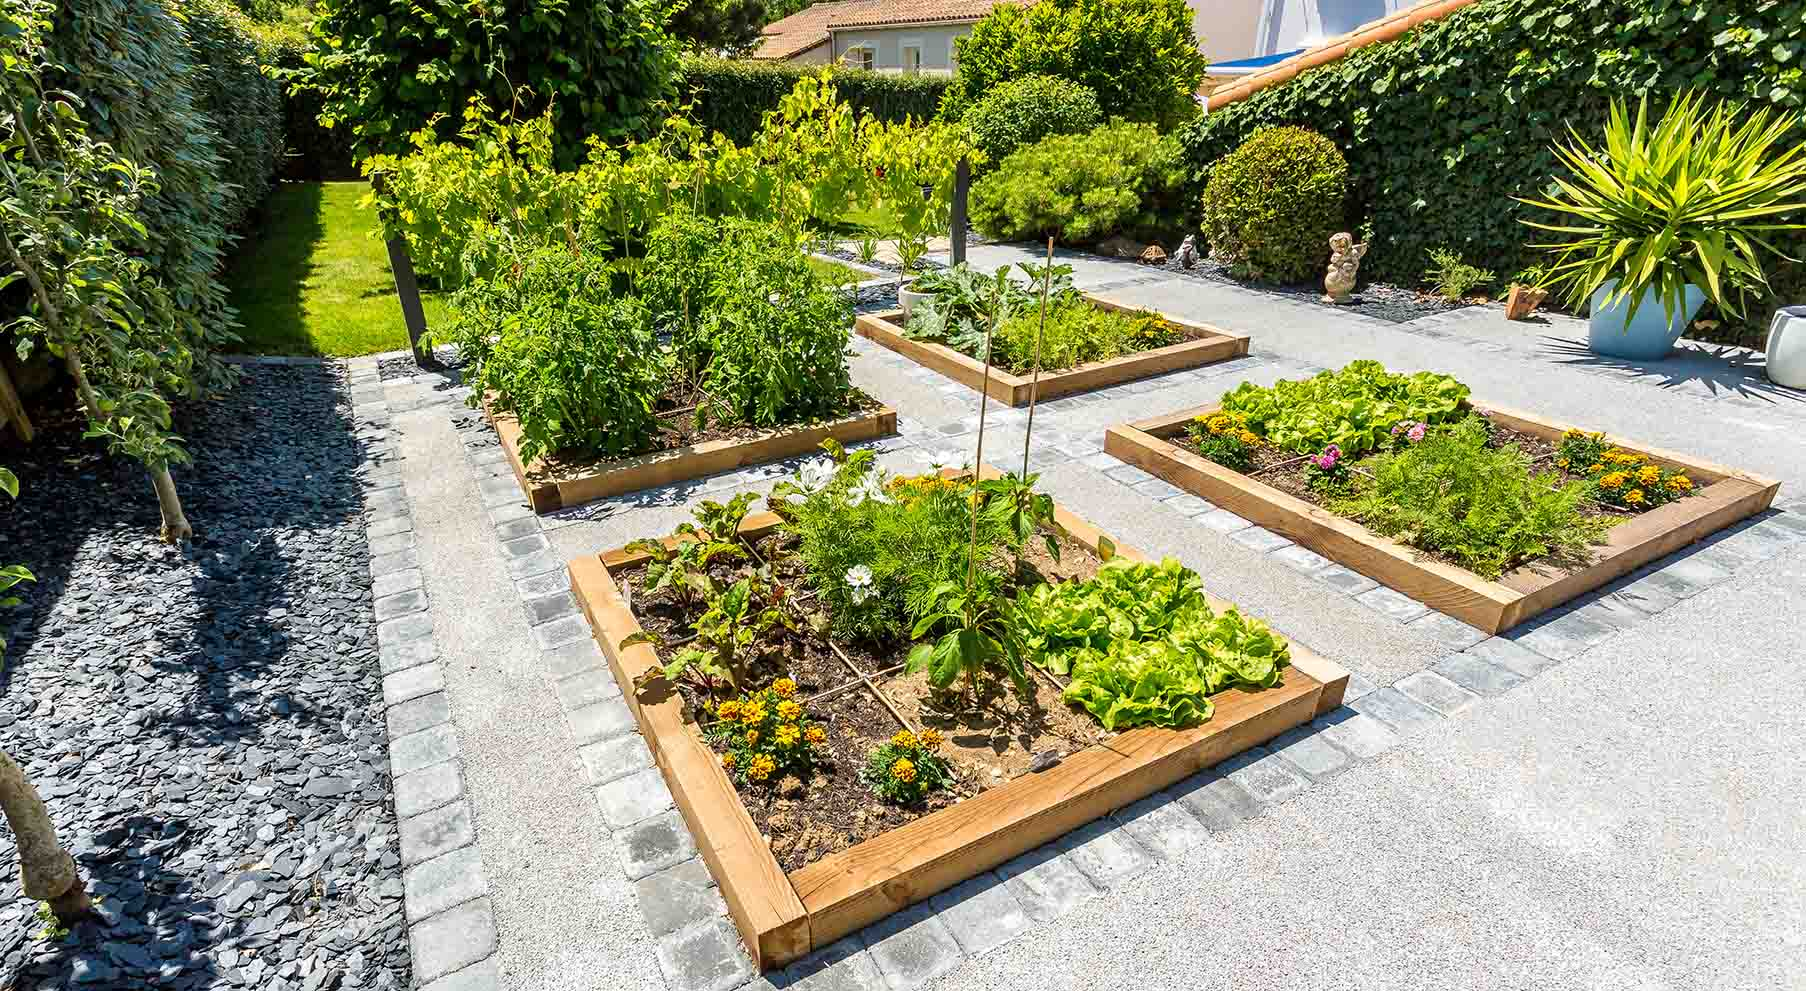 Decoration jardin potager qj45 jornalagora for Carre jardin